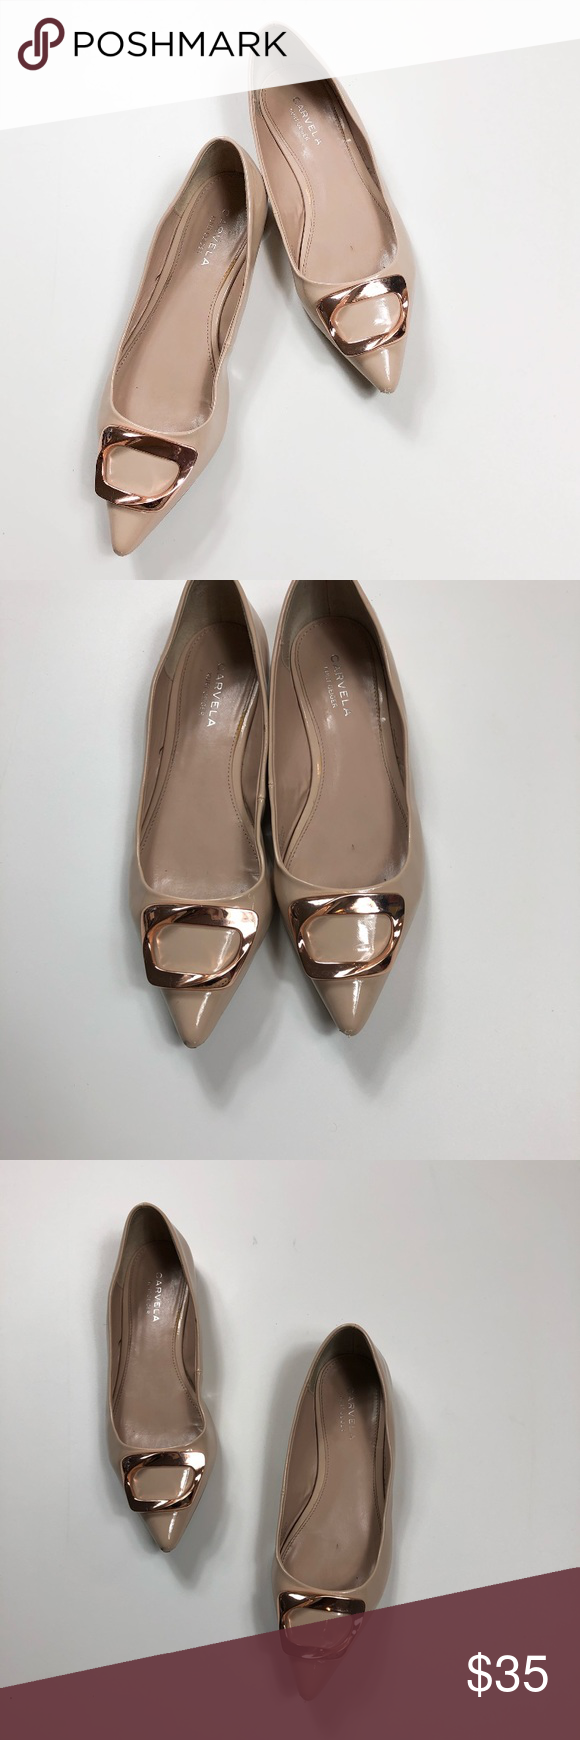 Nadia Nude Flat Loafer Shoes By Miss KG | Kurt Geiger